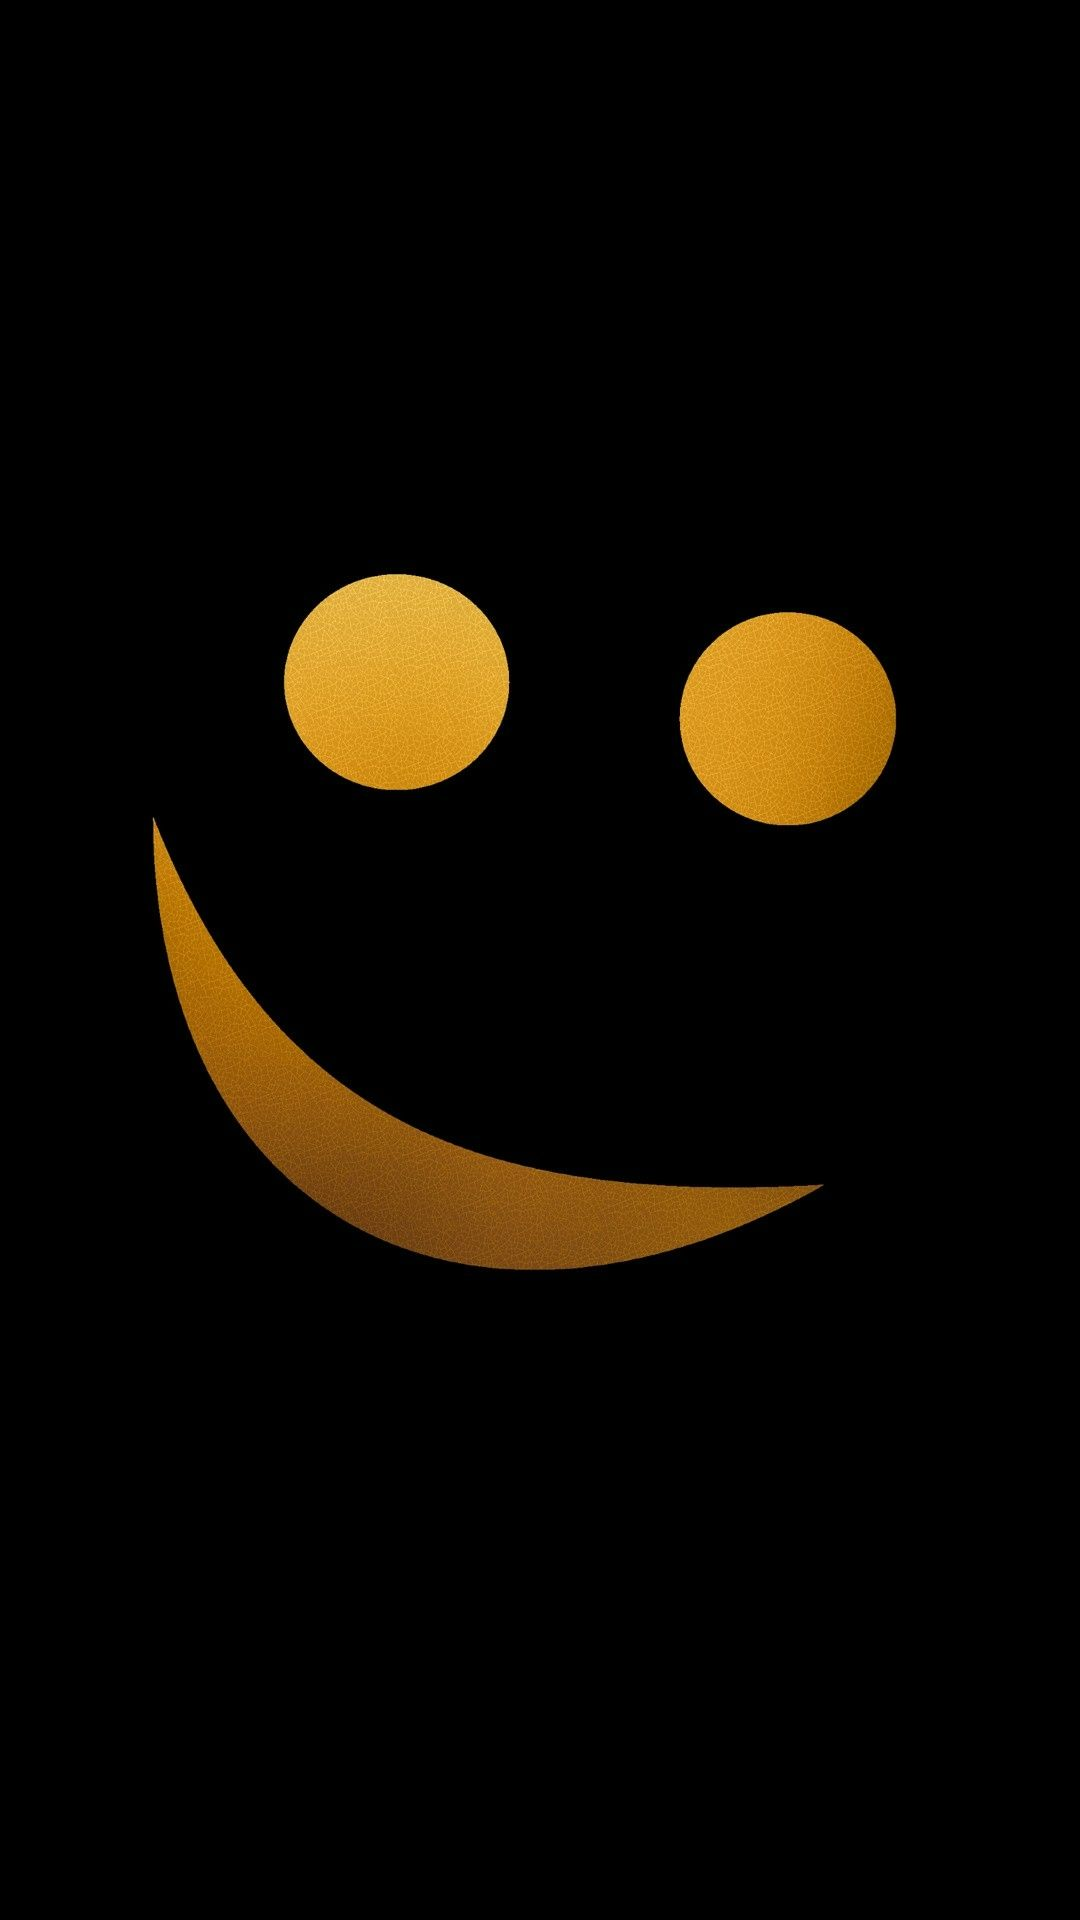 Smile is part of our success | Iphone wallpaper tumblr ...